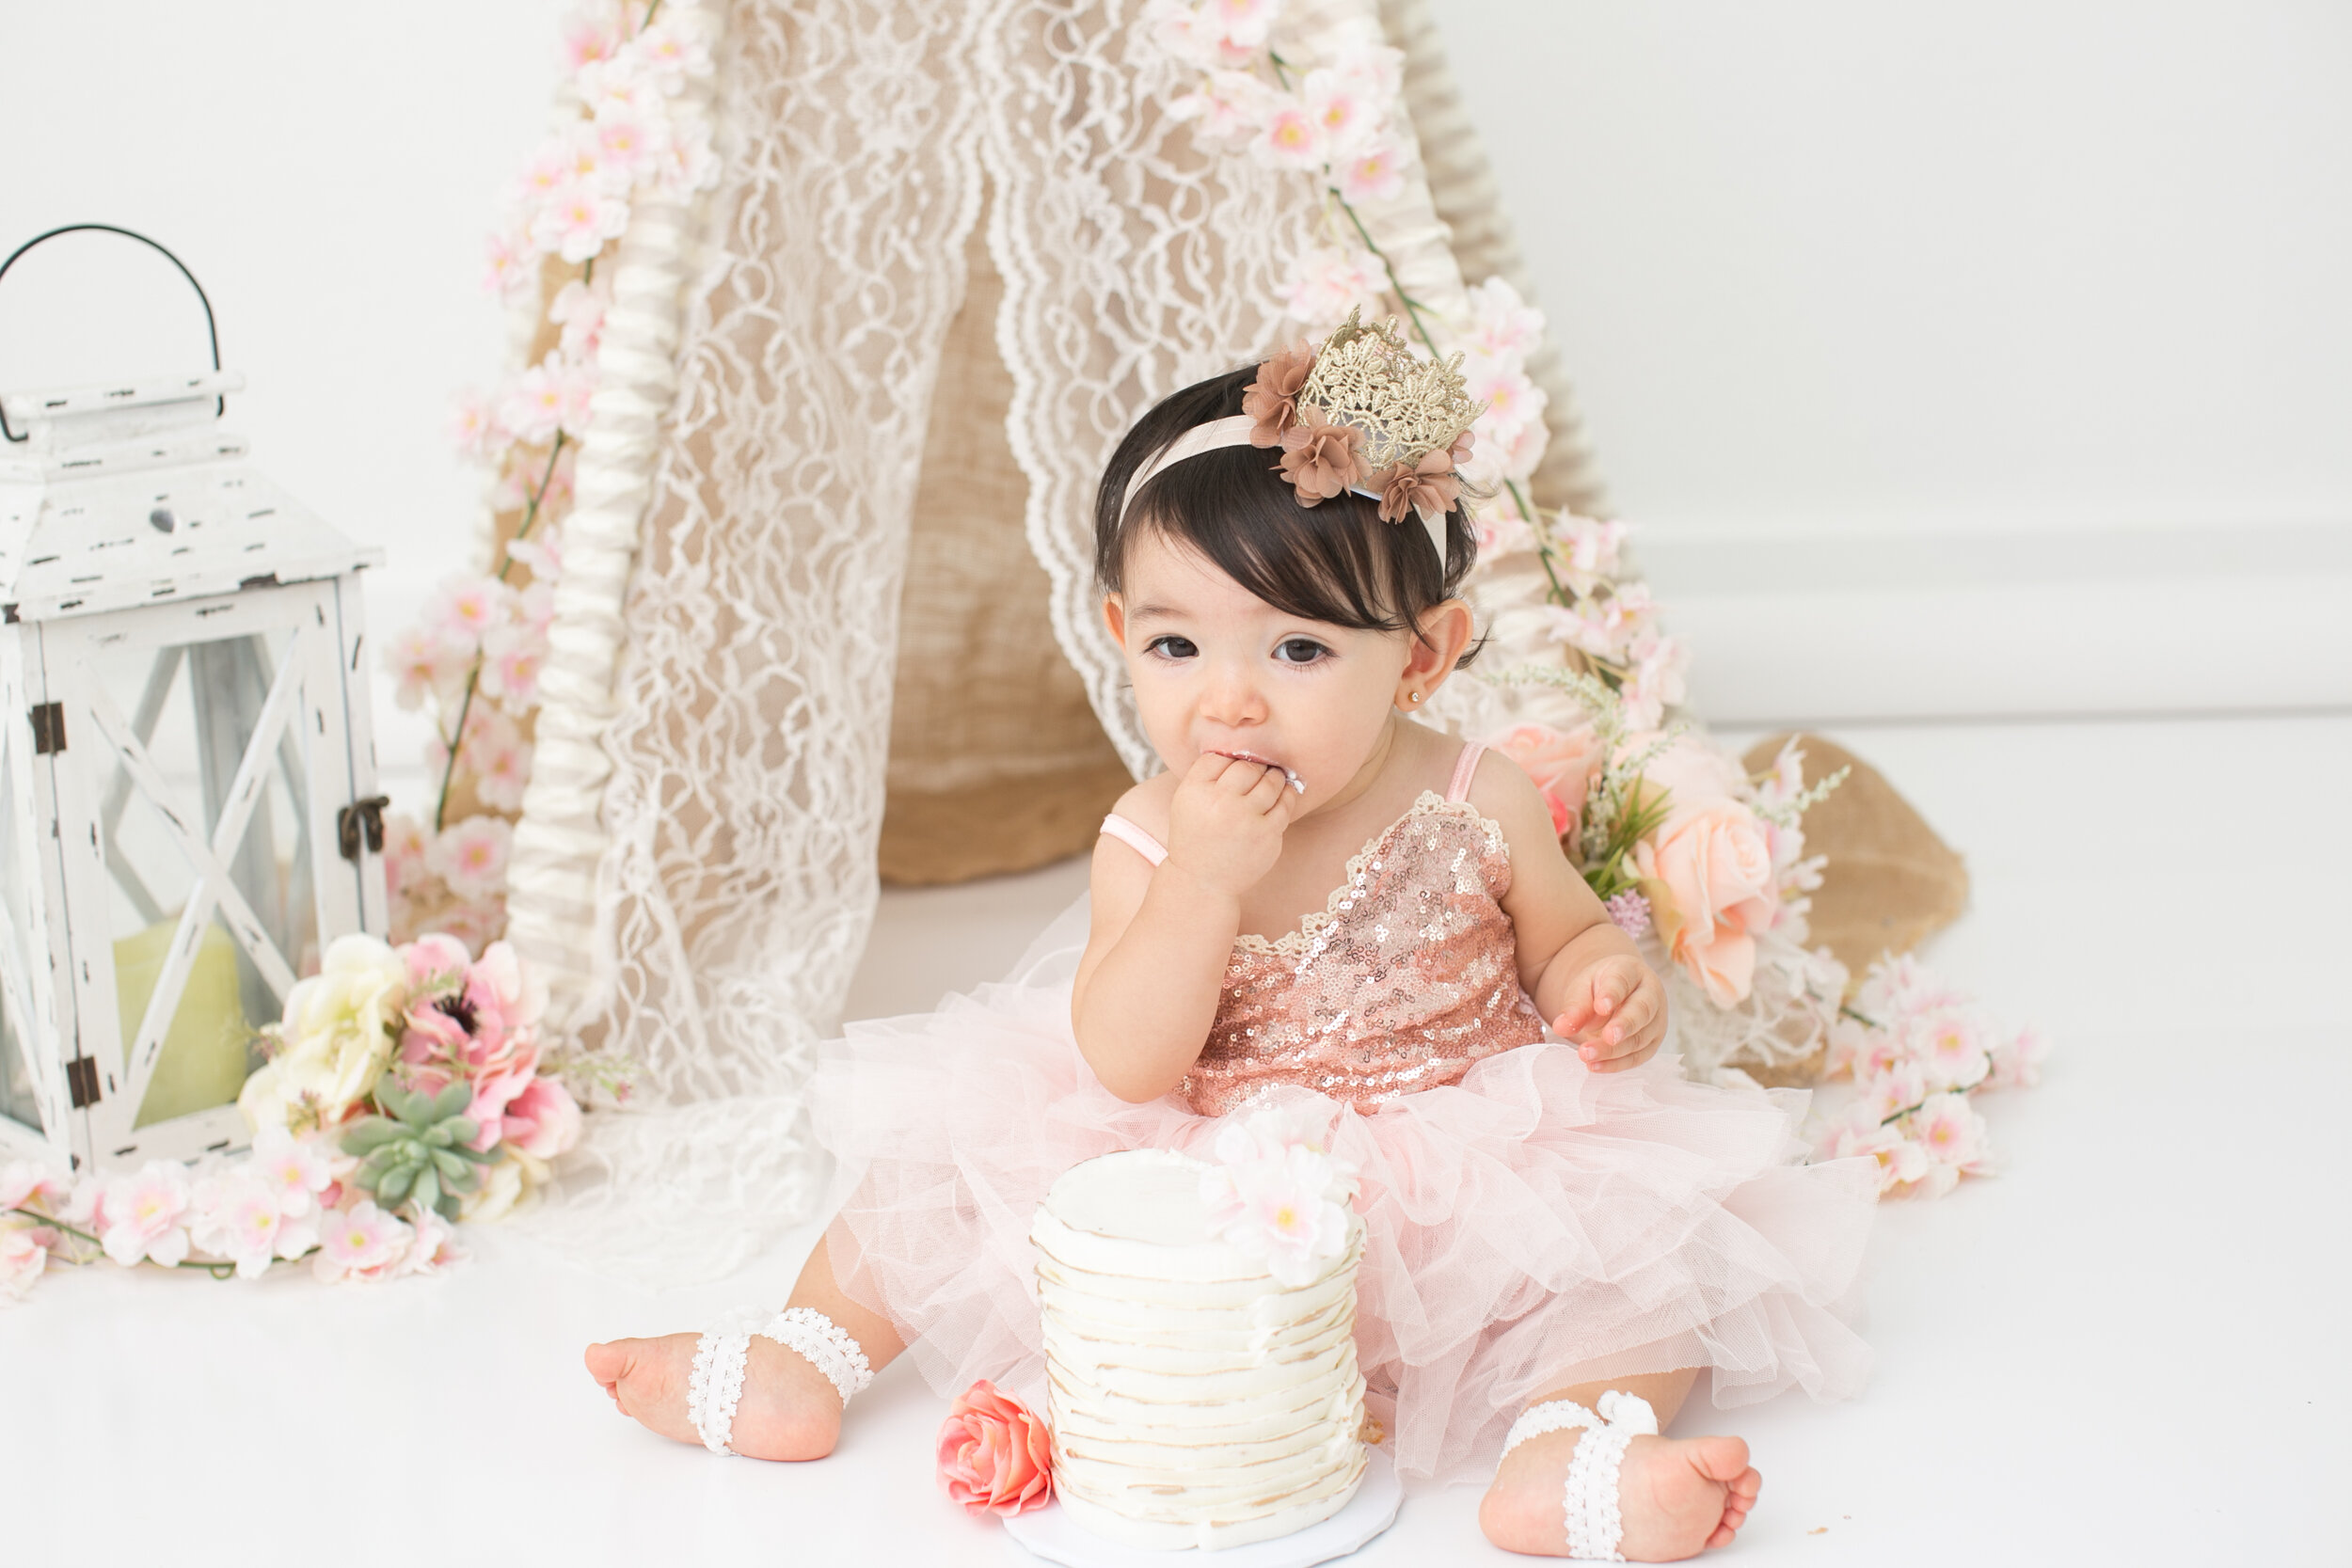 teepee-cake-smash-san-antonio-texas-lytle-photoshoot.jpg